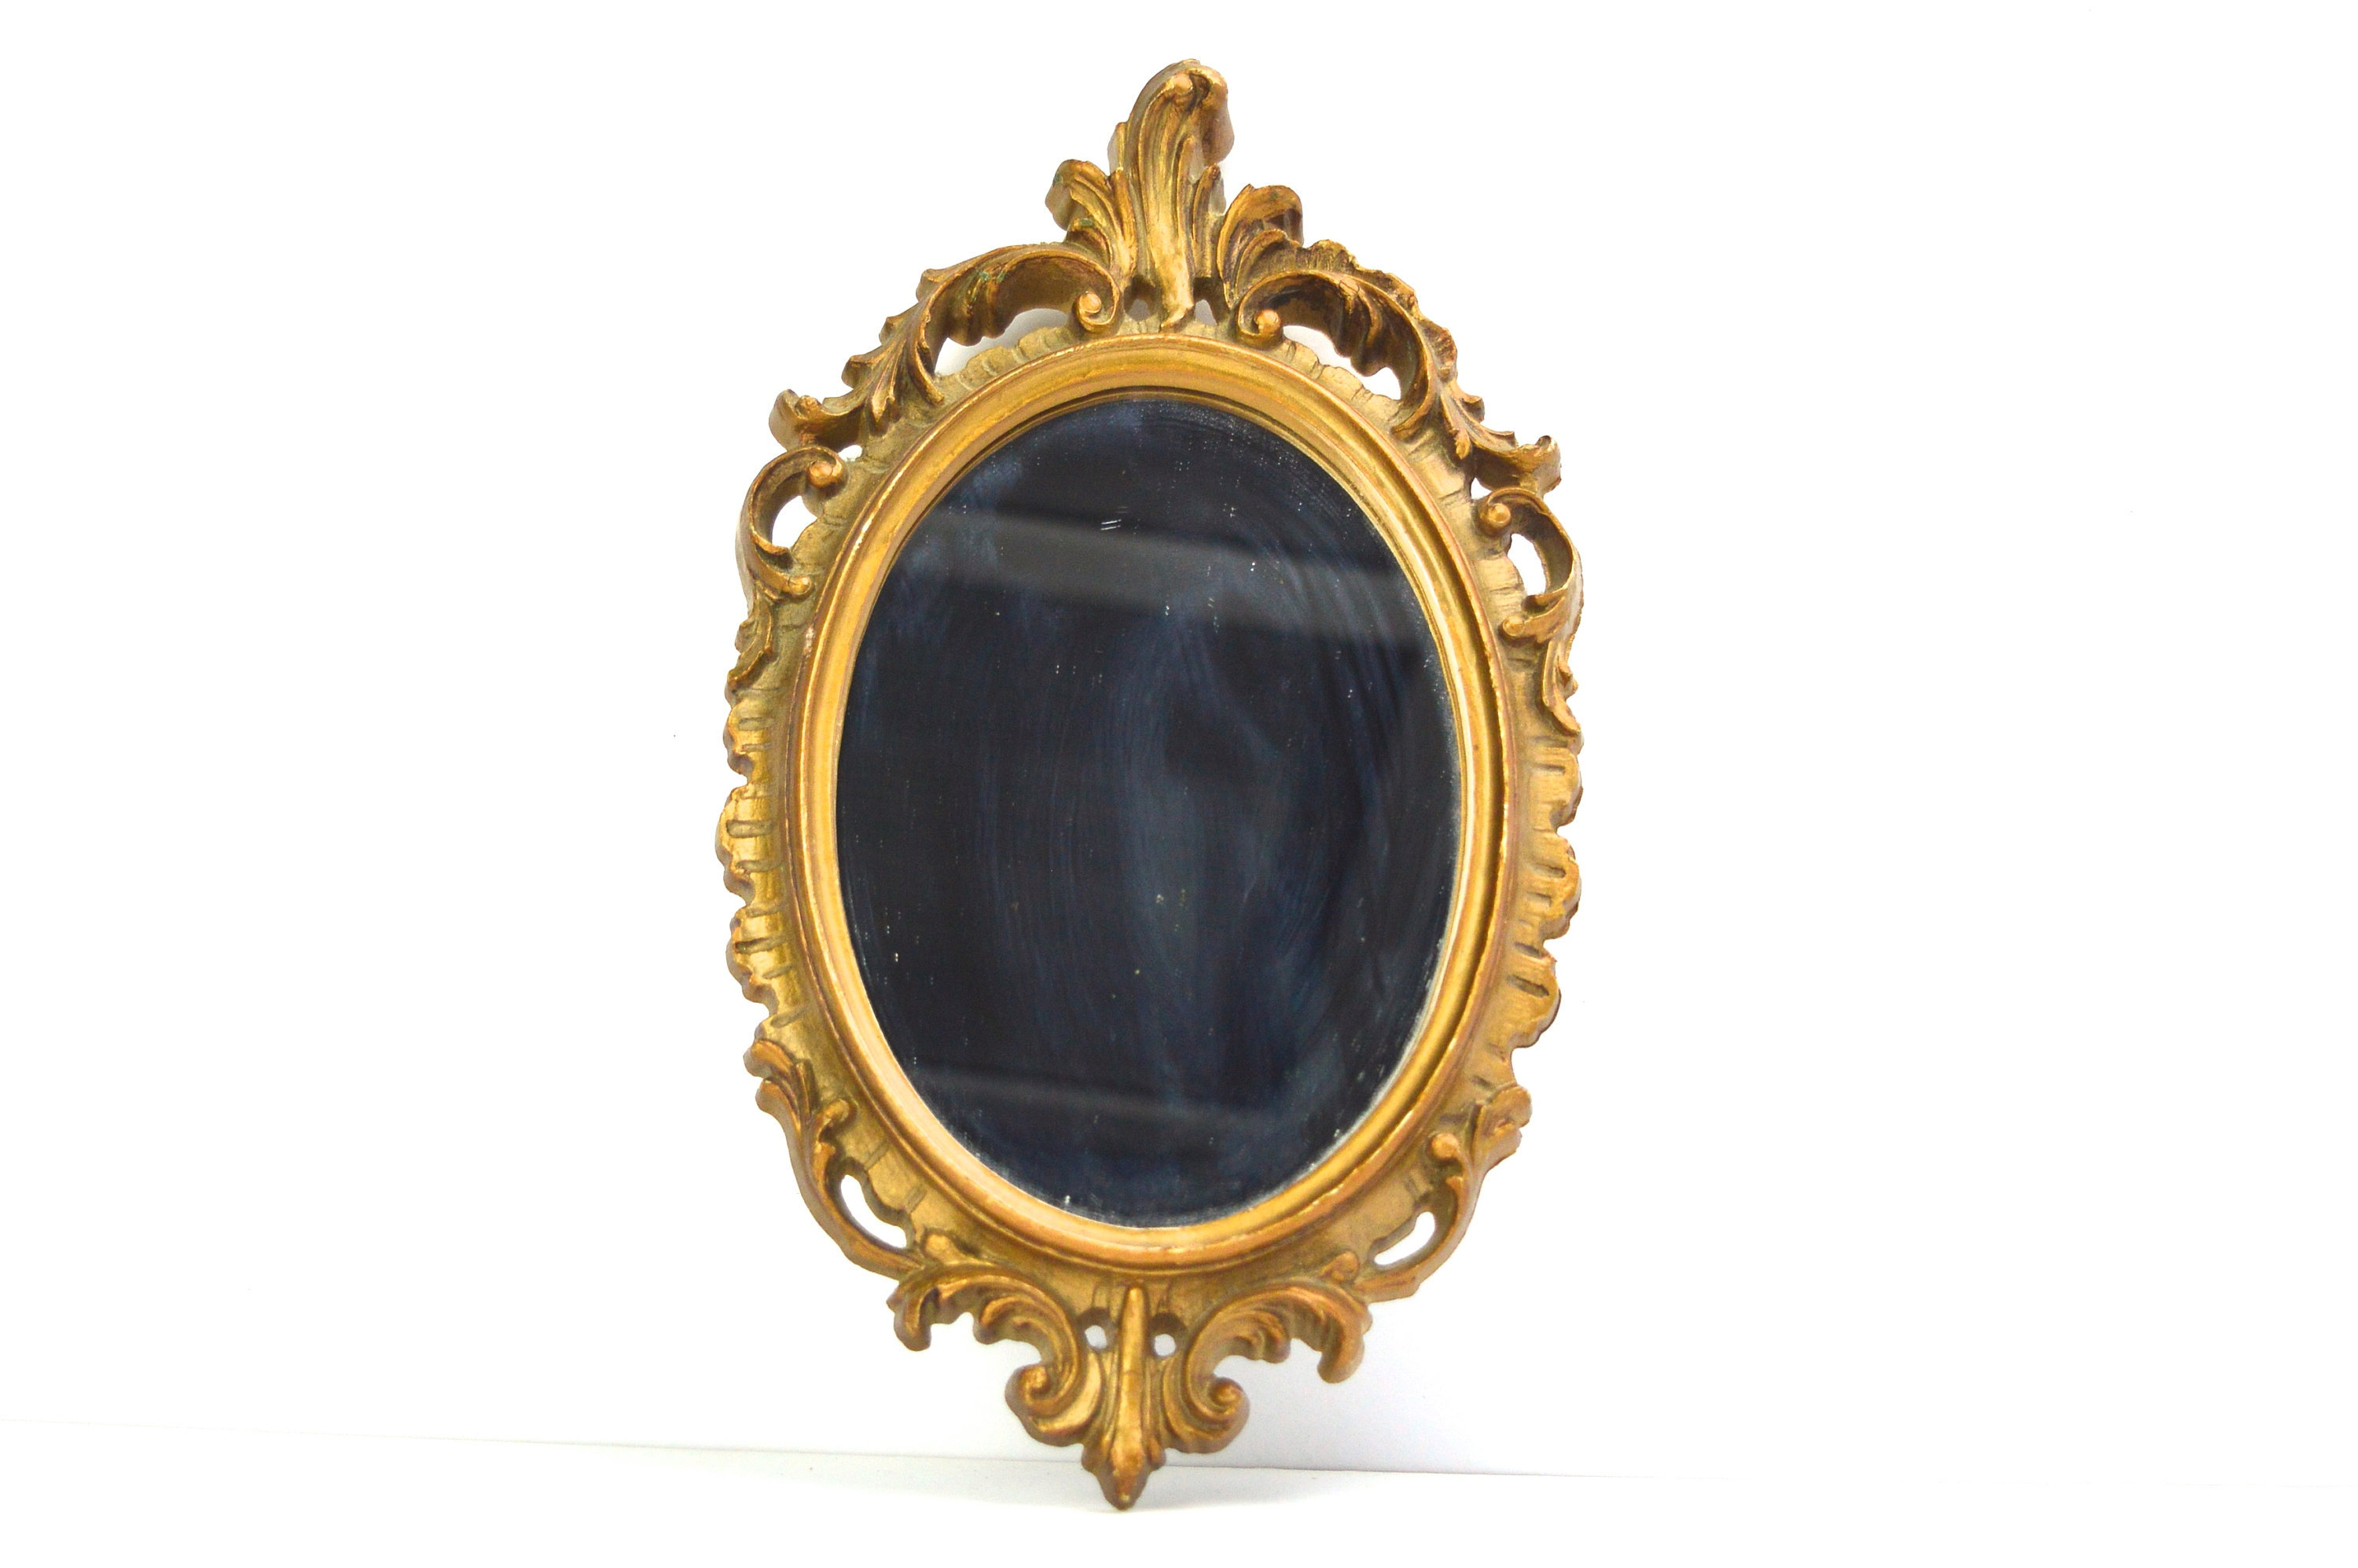 Mirror Small Oval Wall Mirror Filigree Frame Vintage Home Decor Pertaining To Most Recently Released Small Oval Wall Mirrors (View 15 of 20)